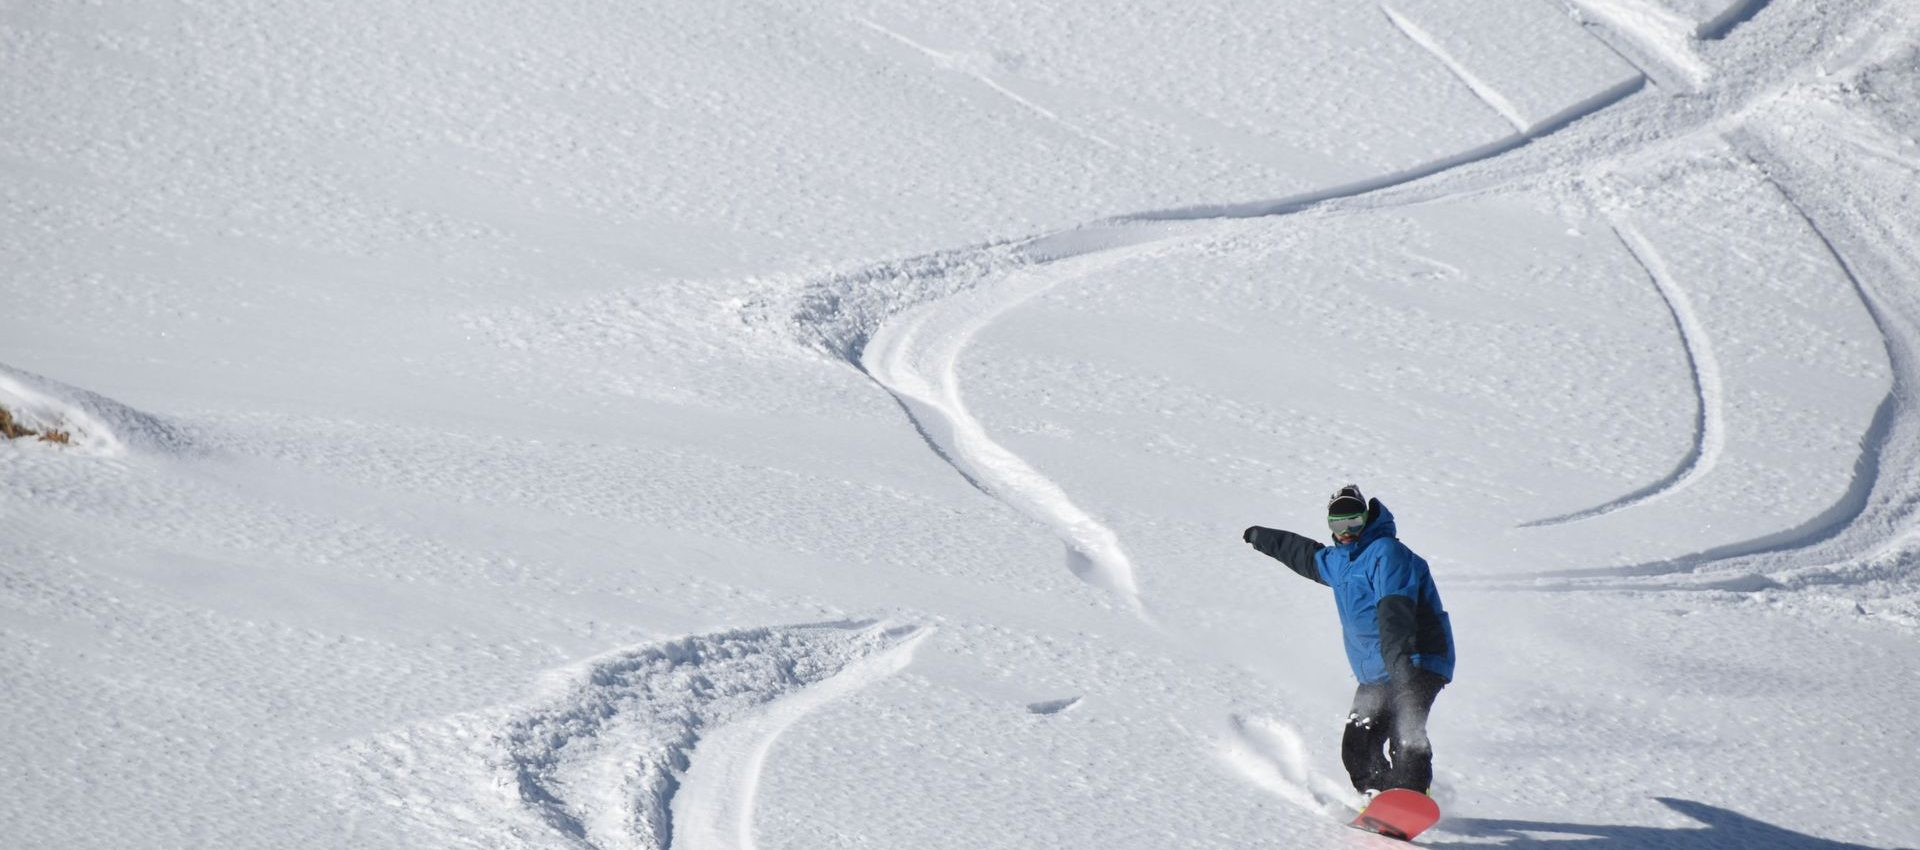 Enjoying the virgin snow, carving down is just like drawing lines on a blank canvas.